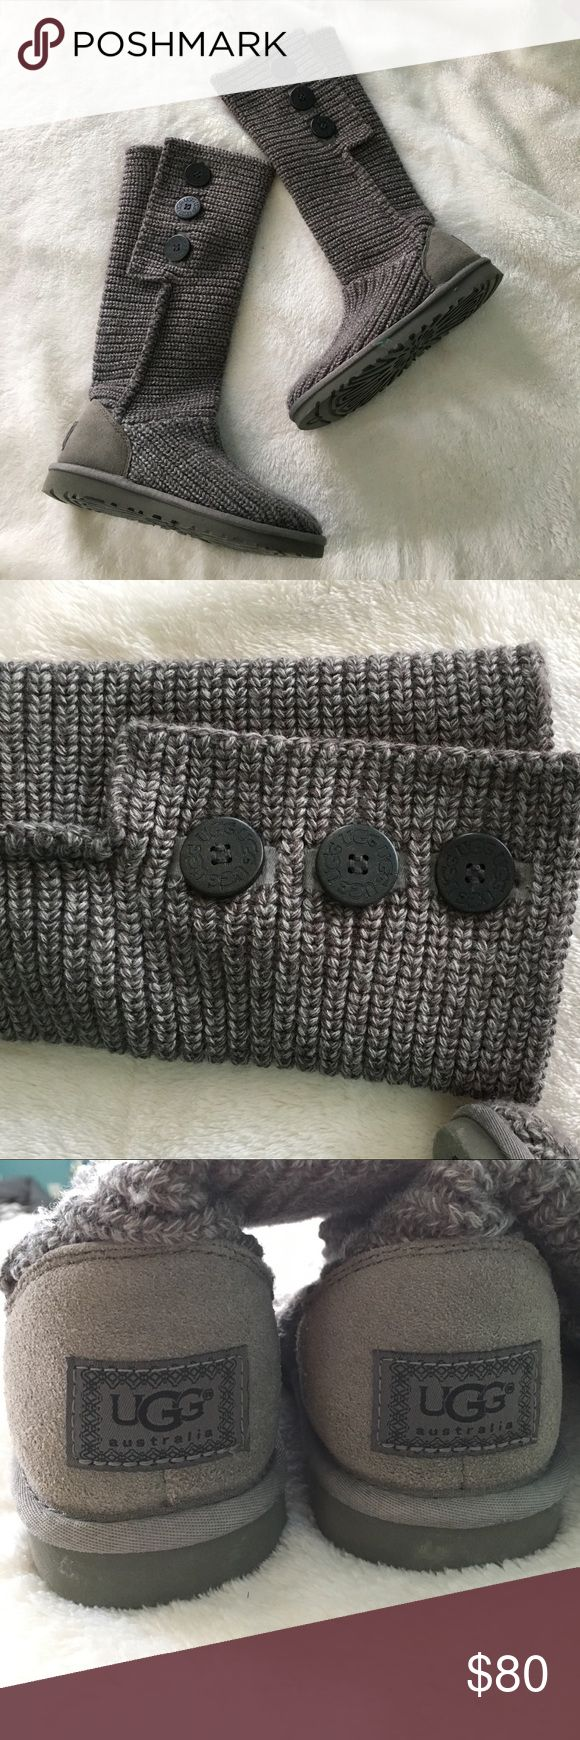 Gray UGG classic cardy boot Knit boots with 3 buttons.  Only worn once or twice. Small brown discoloration on top of right boot as shown in the last photo UGG Shoes Winter & Rain Boots